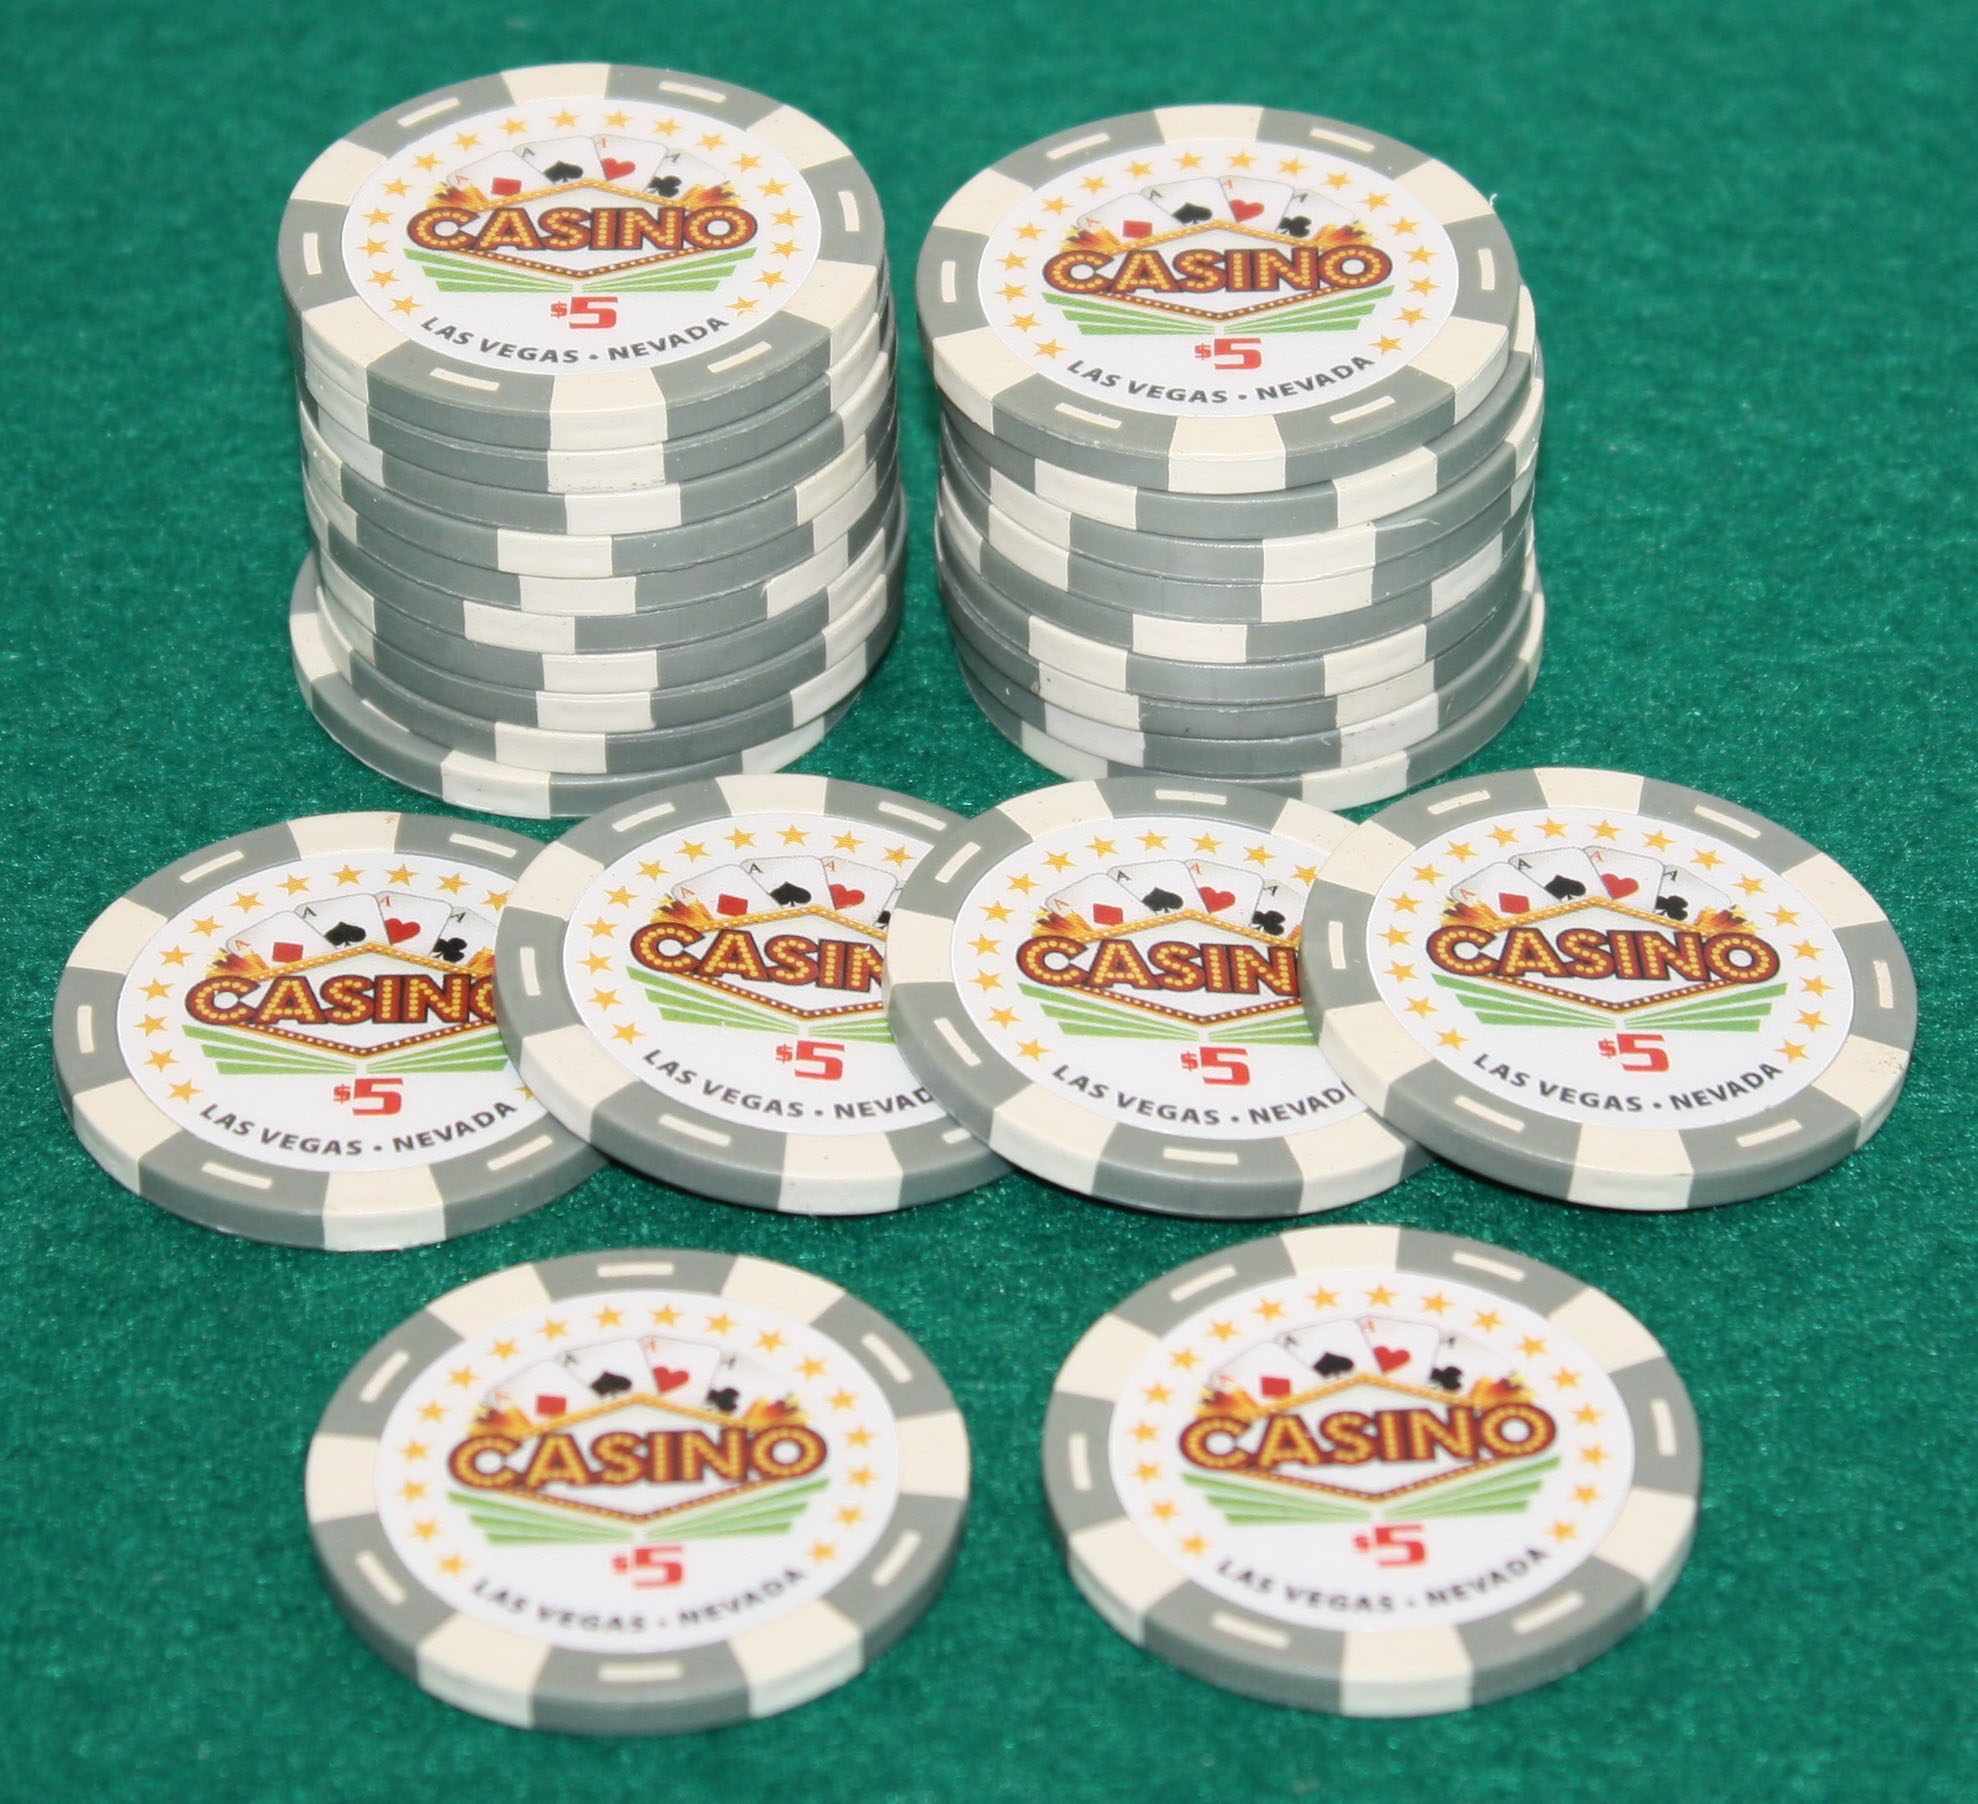 $5 Pro Vegas Casino Chips *Super High Quality* Poker Chip 11.5 Grams (QTY: 25) by